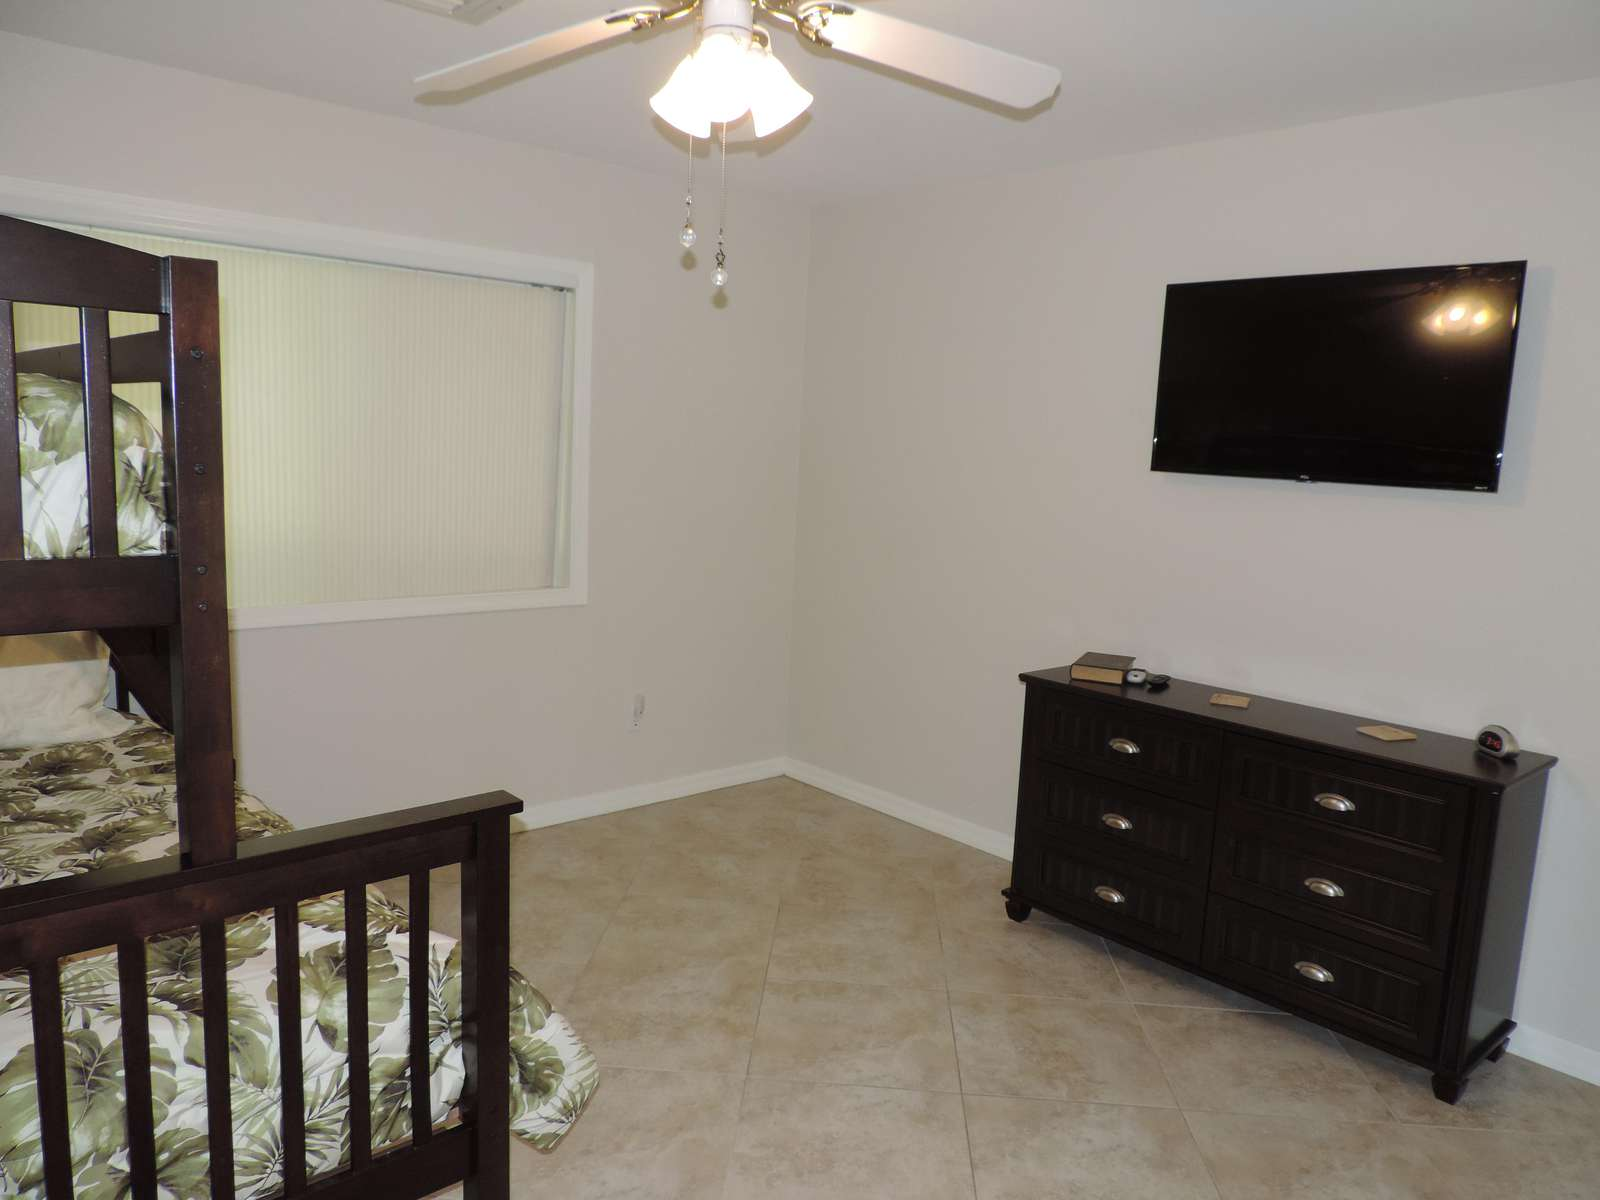 Guest room 2 with extra floor space & TV